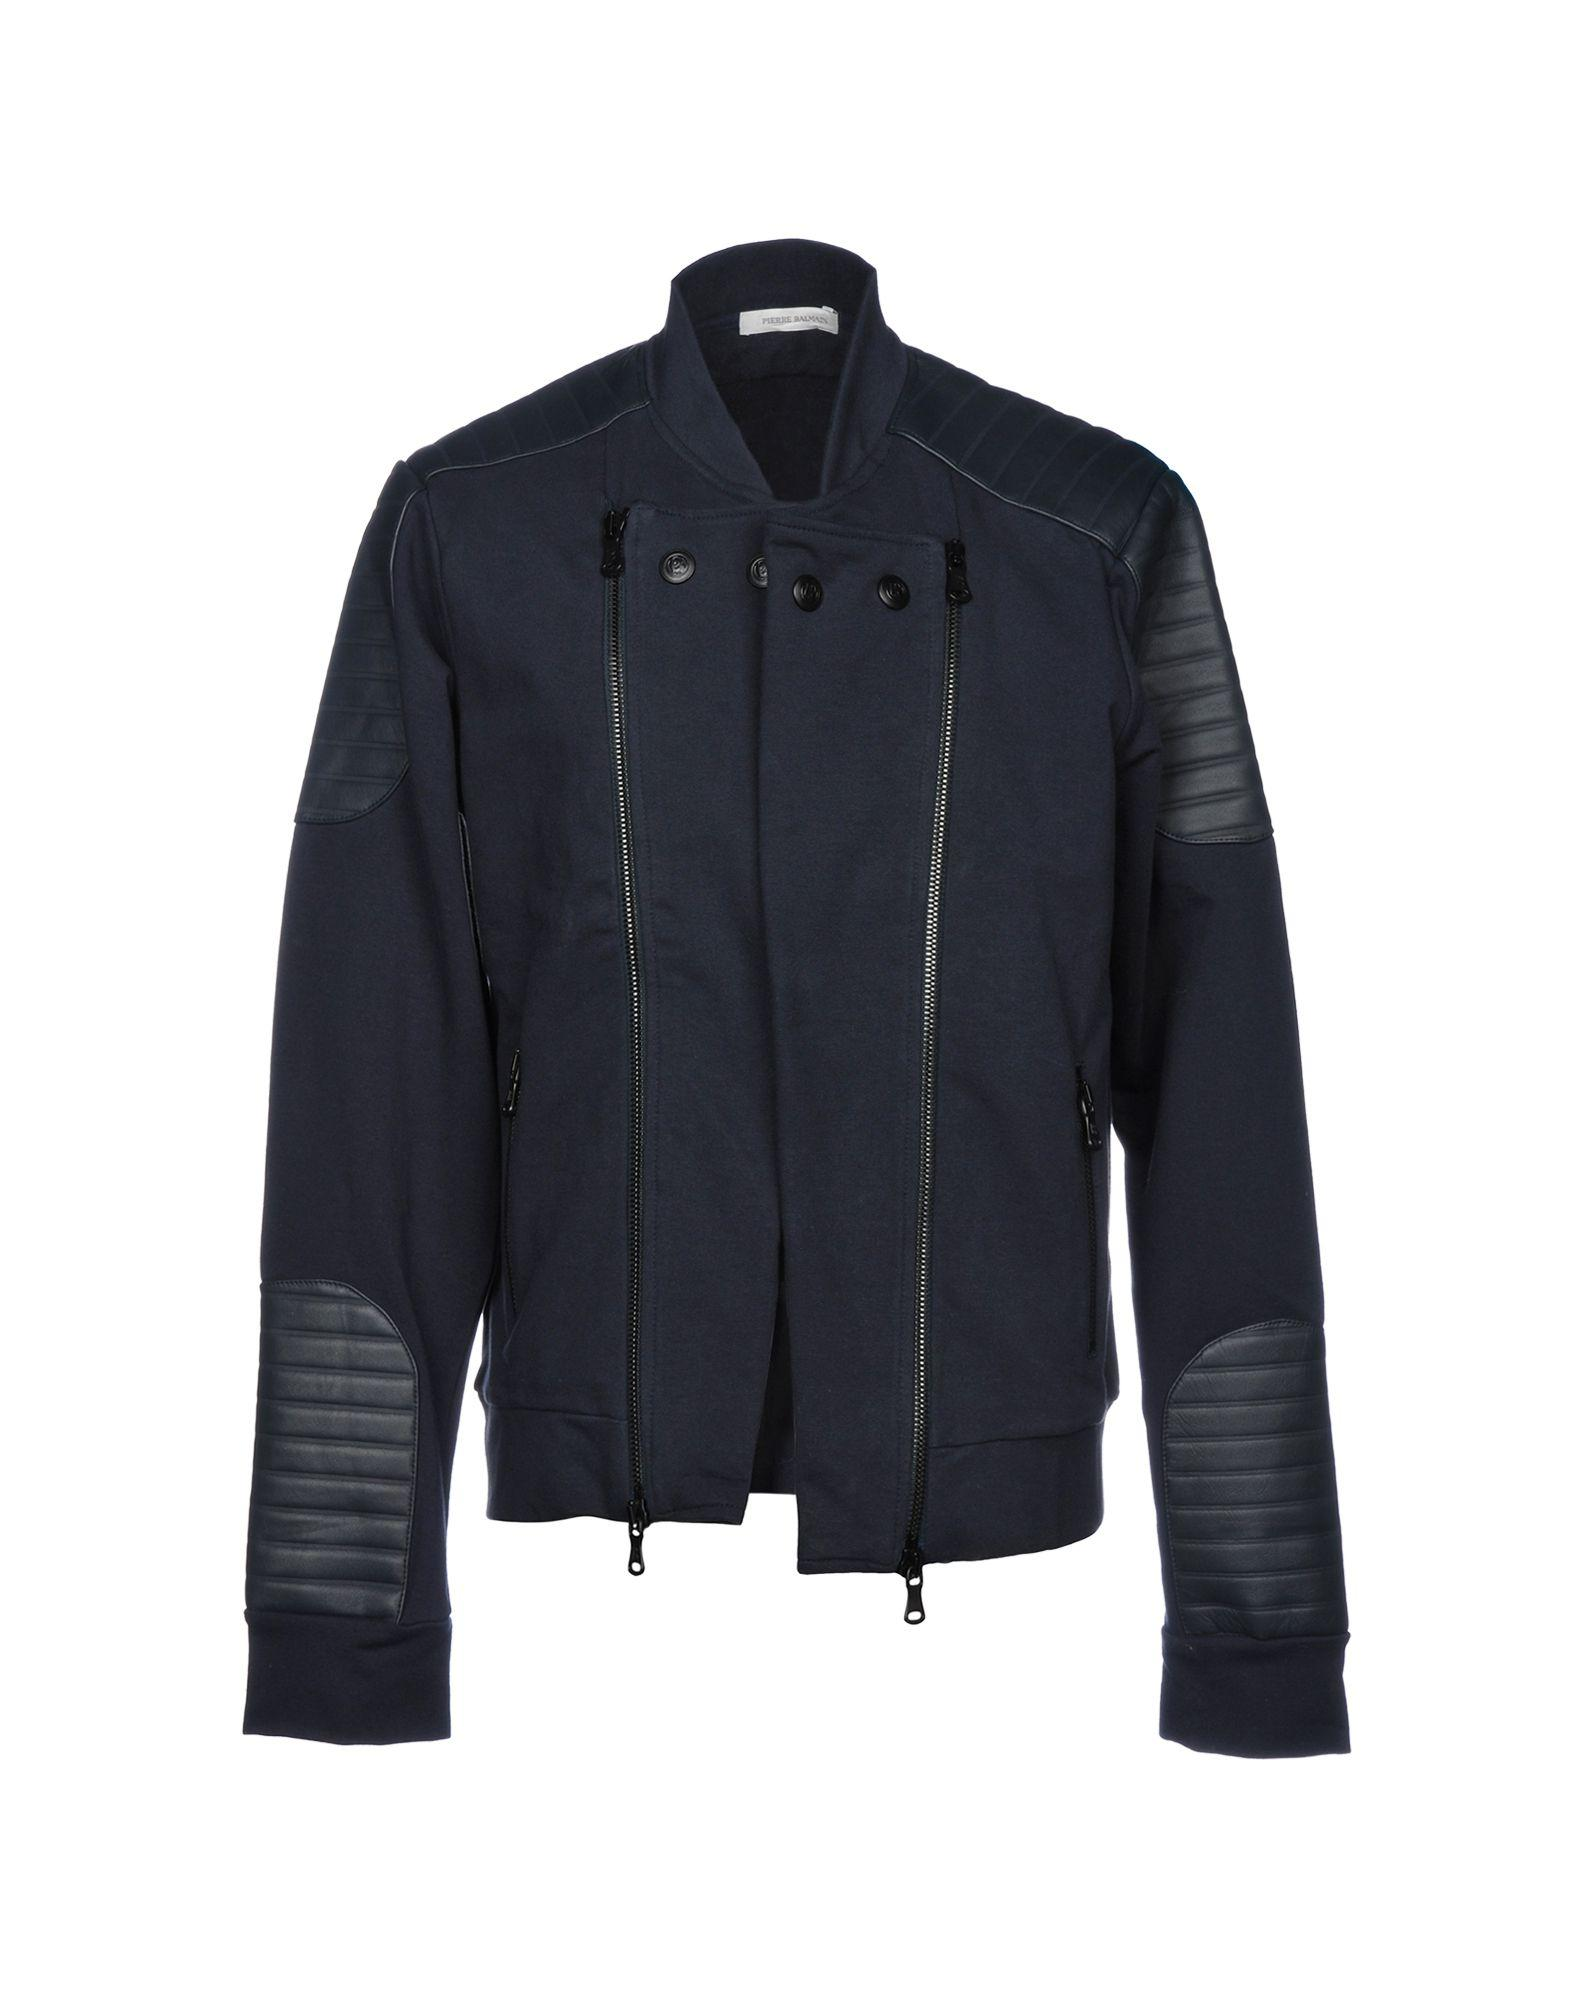 Pierre Balmain Jacket In Dark Blue